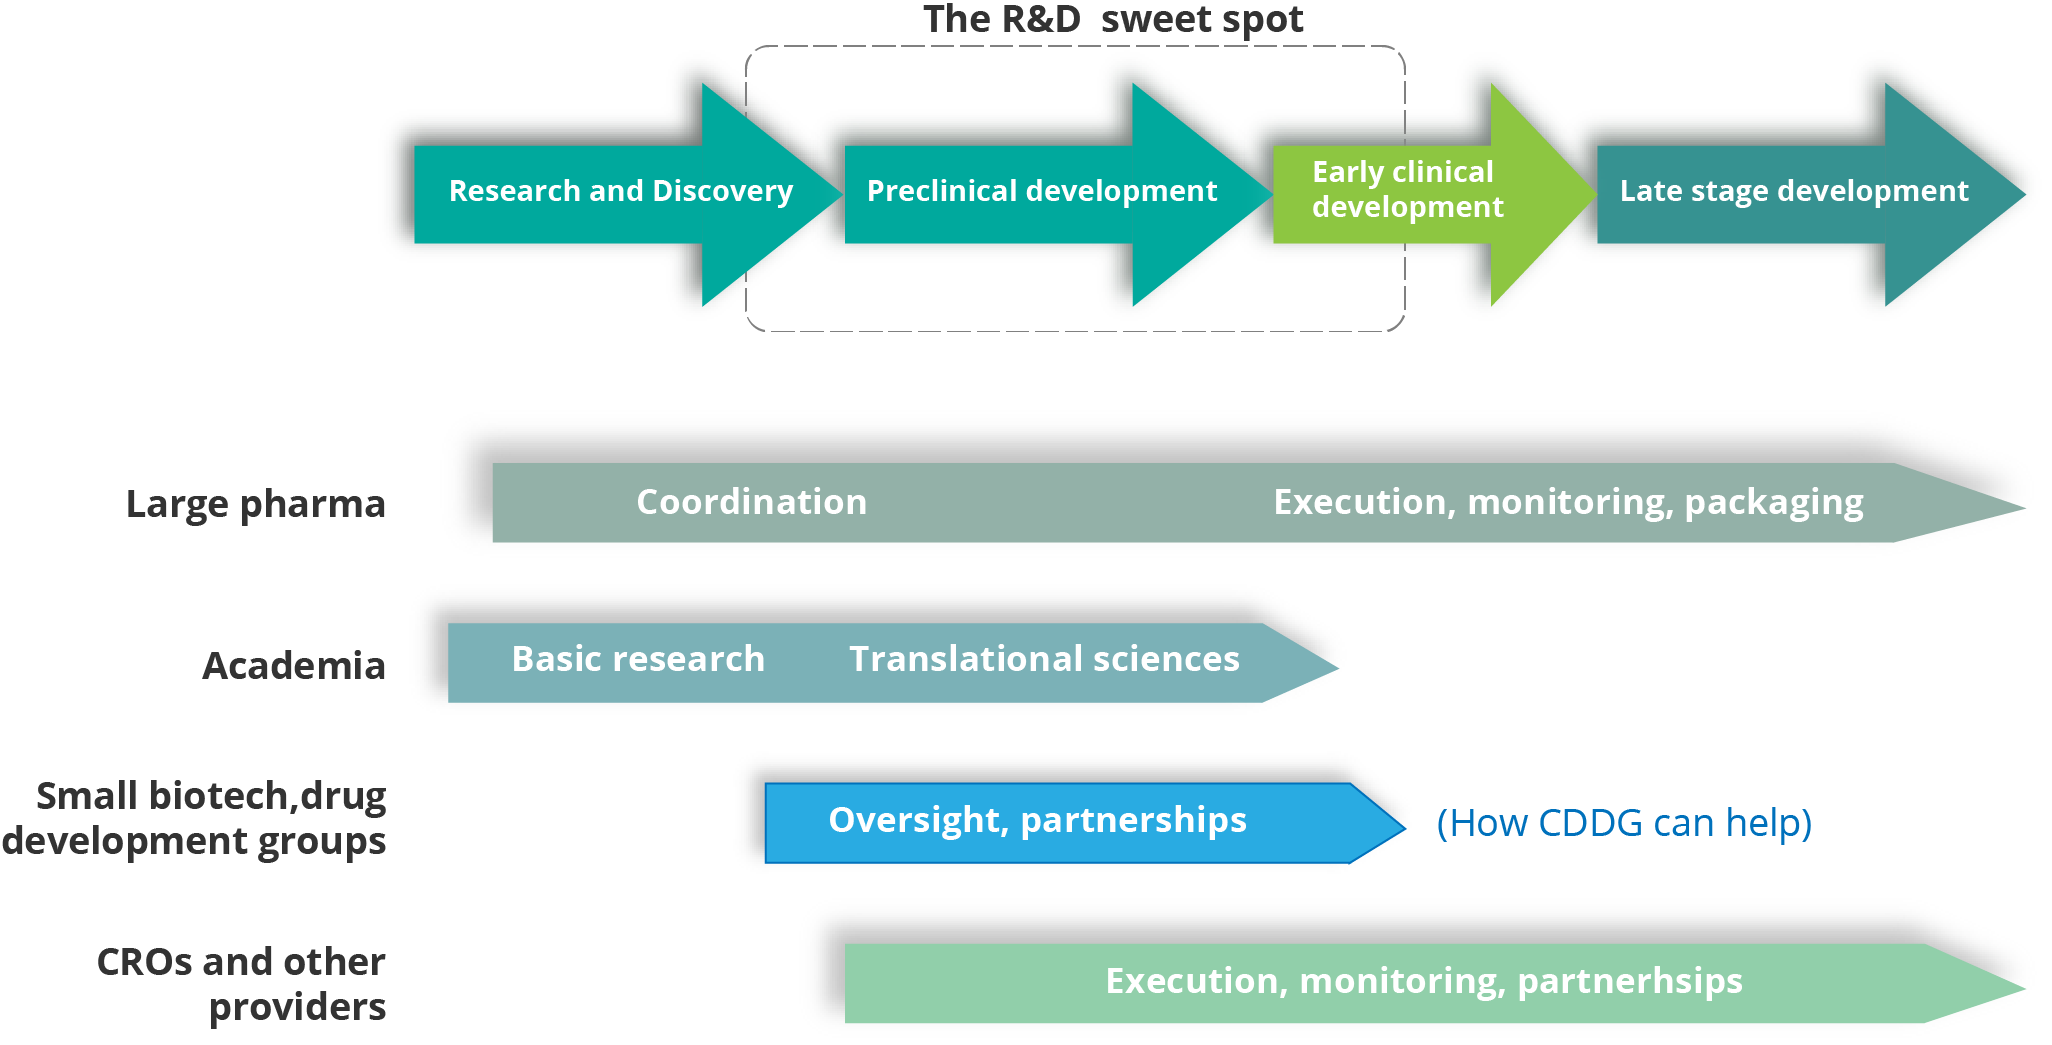 How CDDG fits into a new model for early drug development